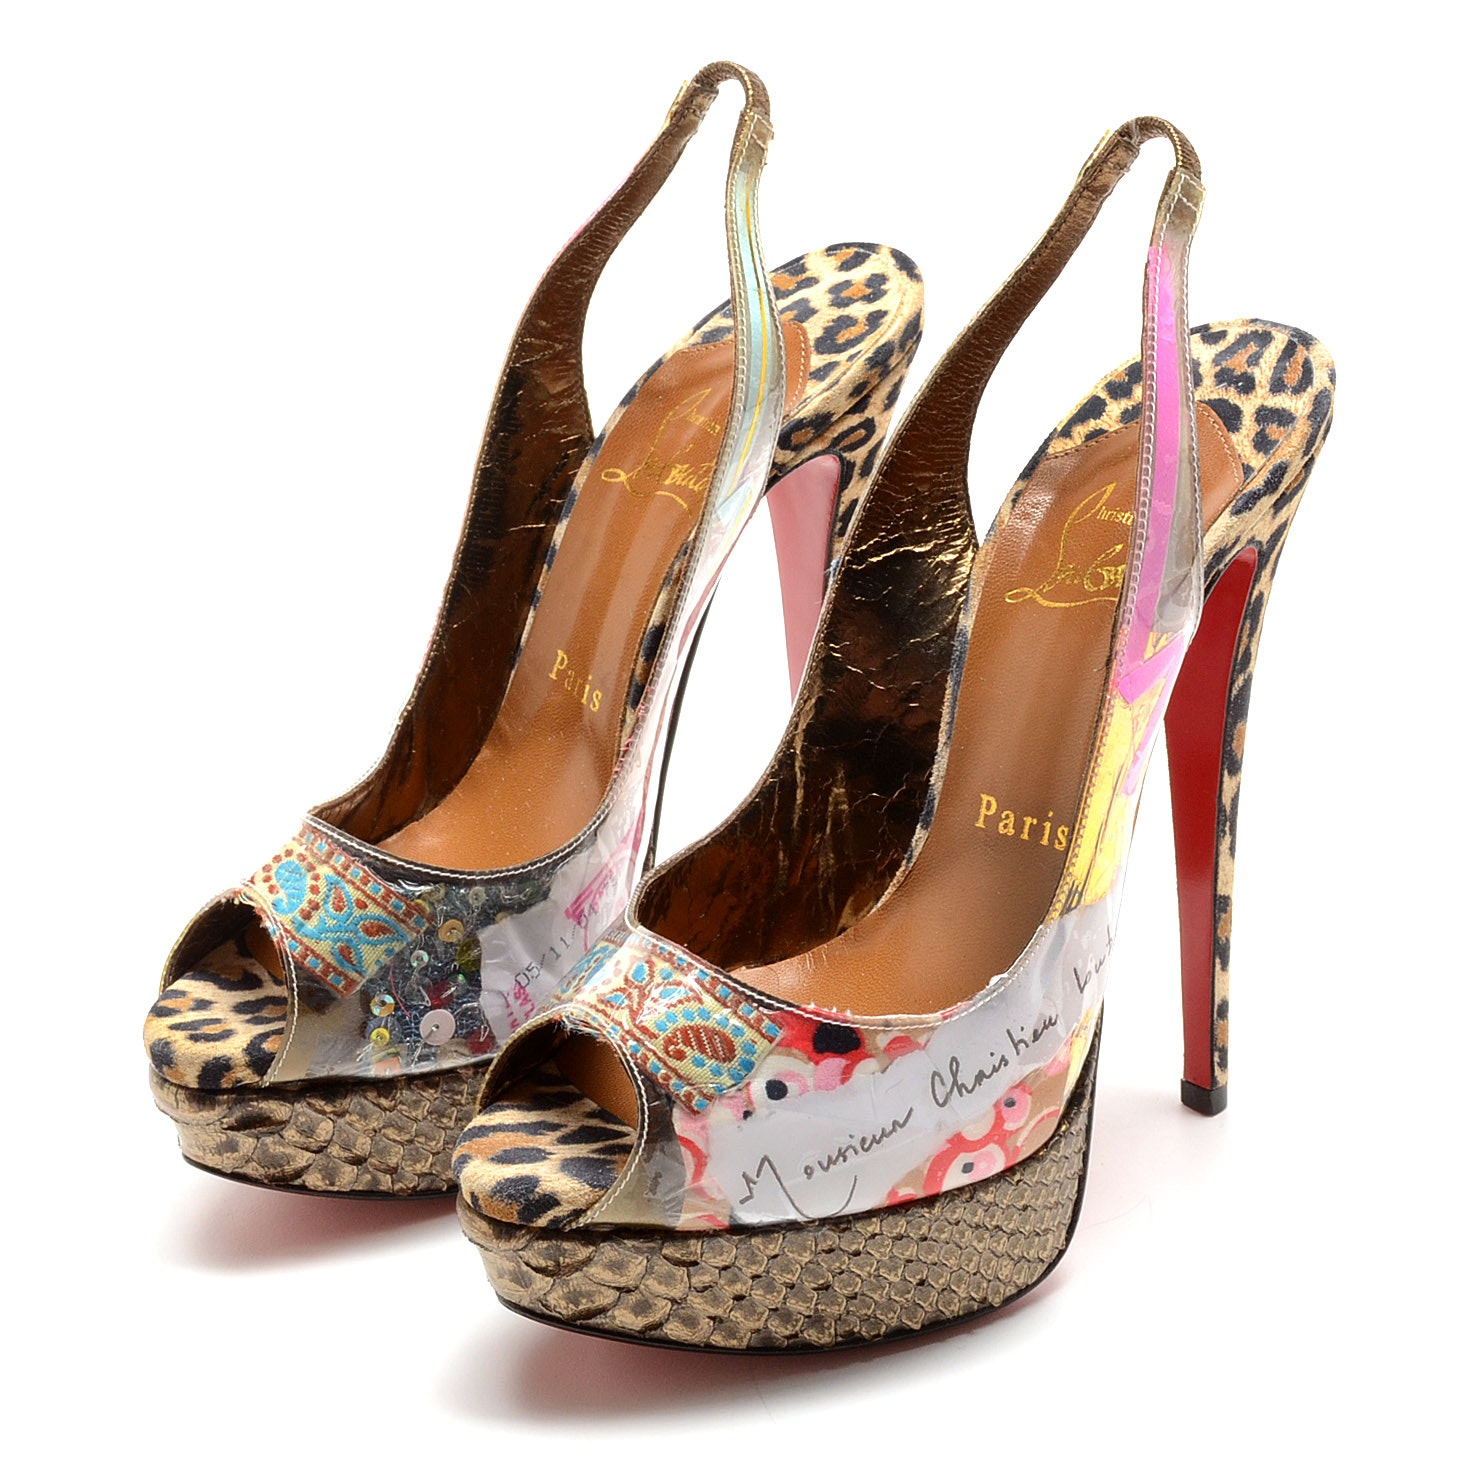 Christian Louboutin of Paris Leopard Print Suede and Decoupage Patent Leather Stiletto Platform Peep Toe Sling Backs